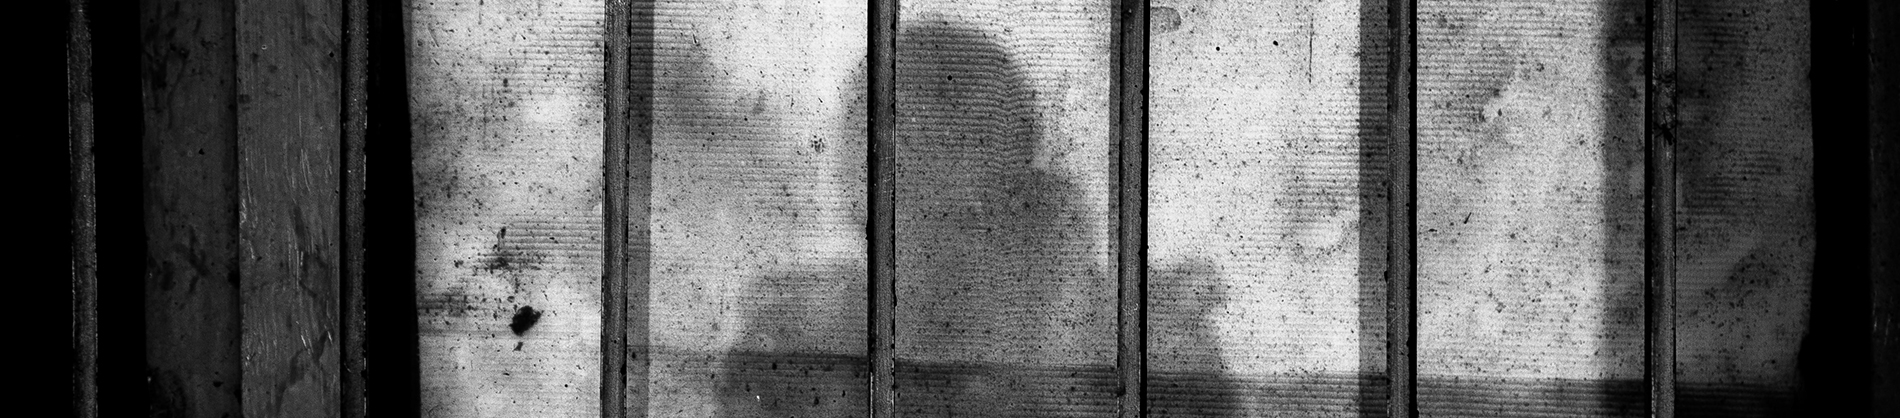 A shadow of a person on ion bars